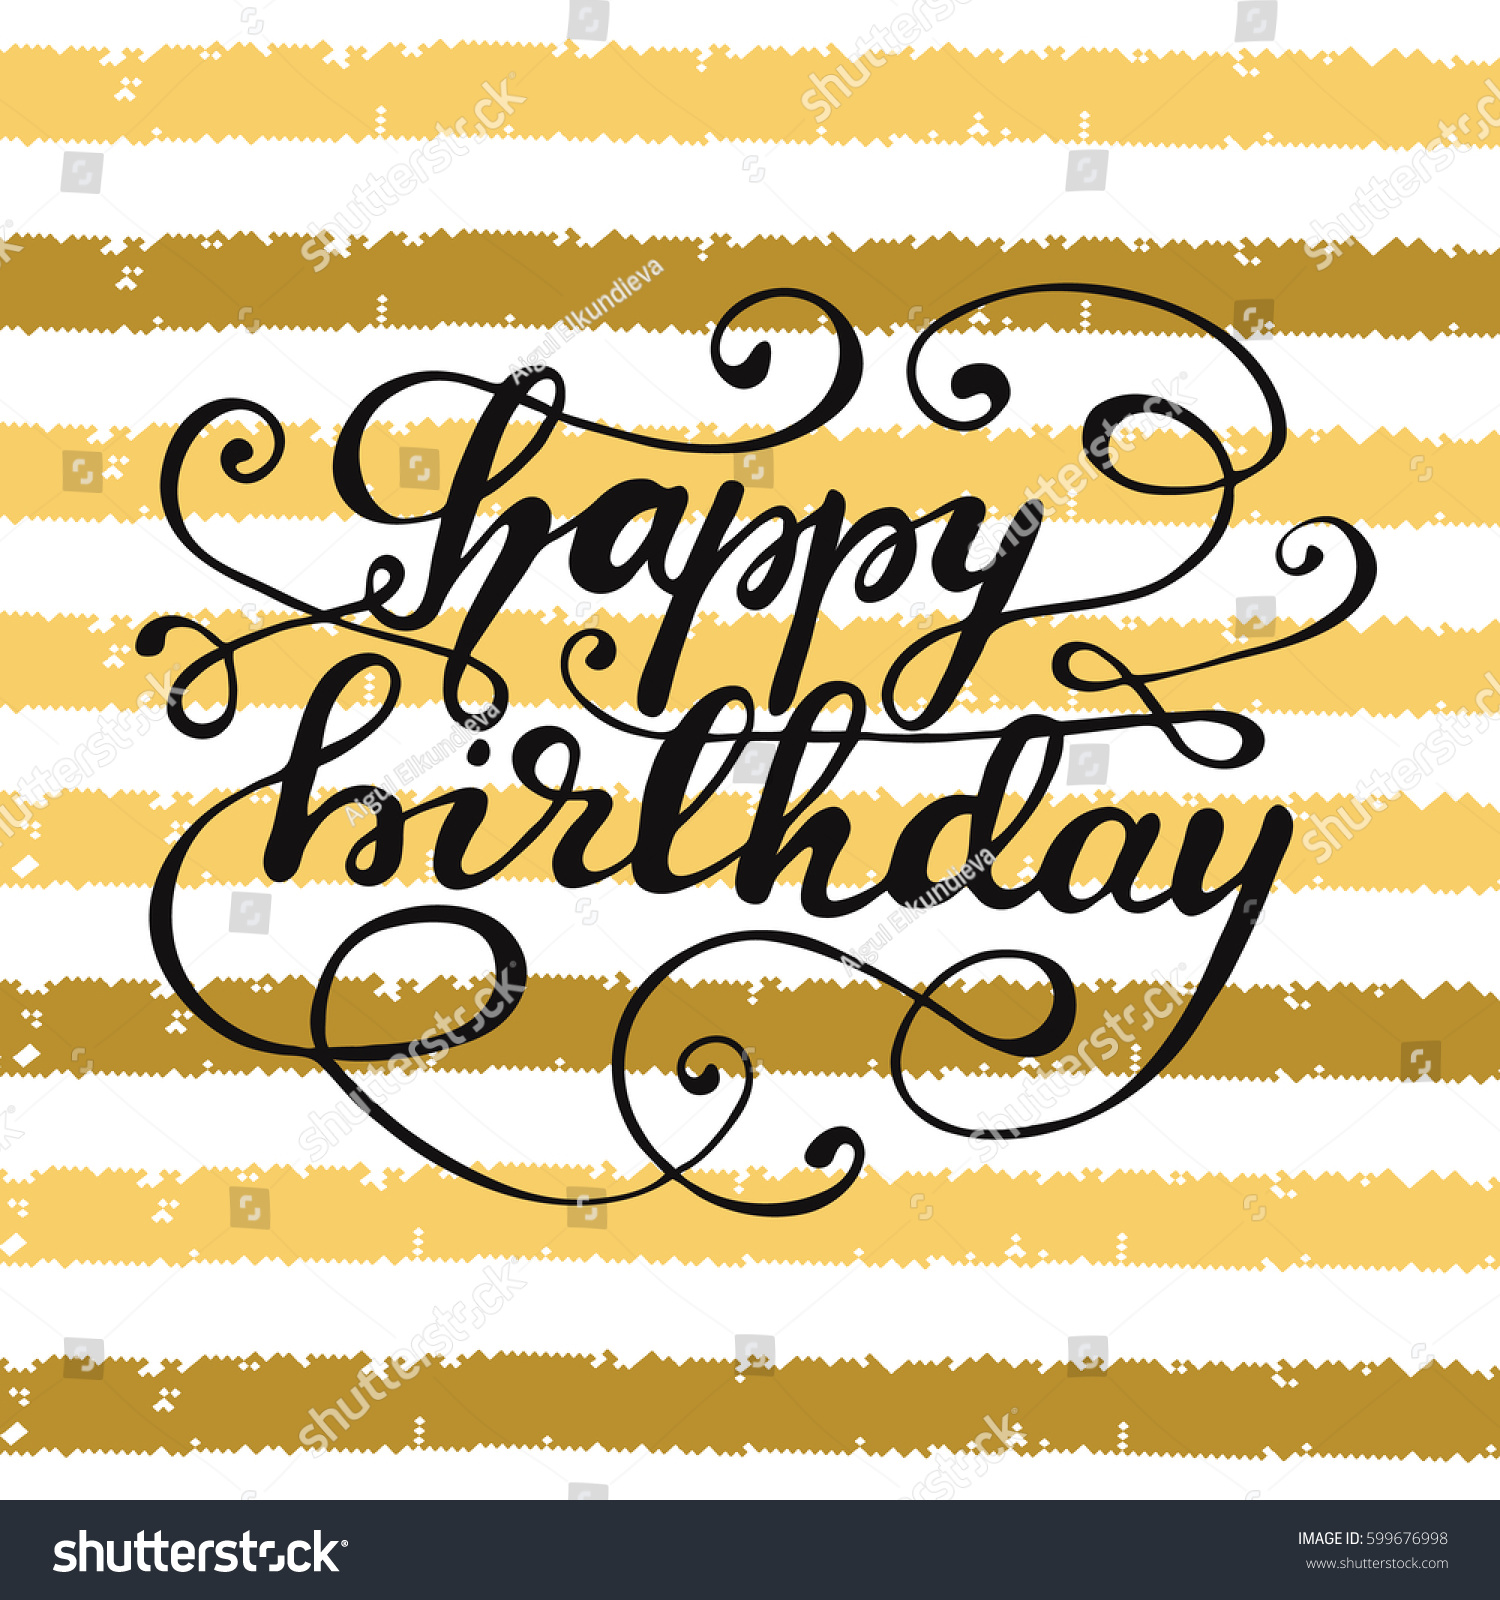 Birthday greeting card design hand drawn stock vector 599676998 birthday greeting card design with hand drawn lettering happy birthday and flourishes vector kristyandbryce Images